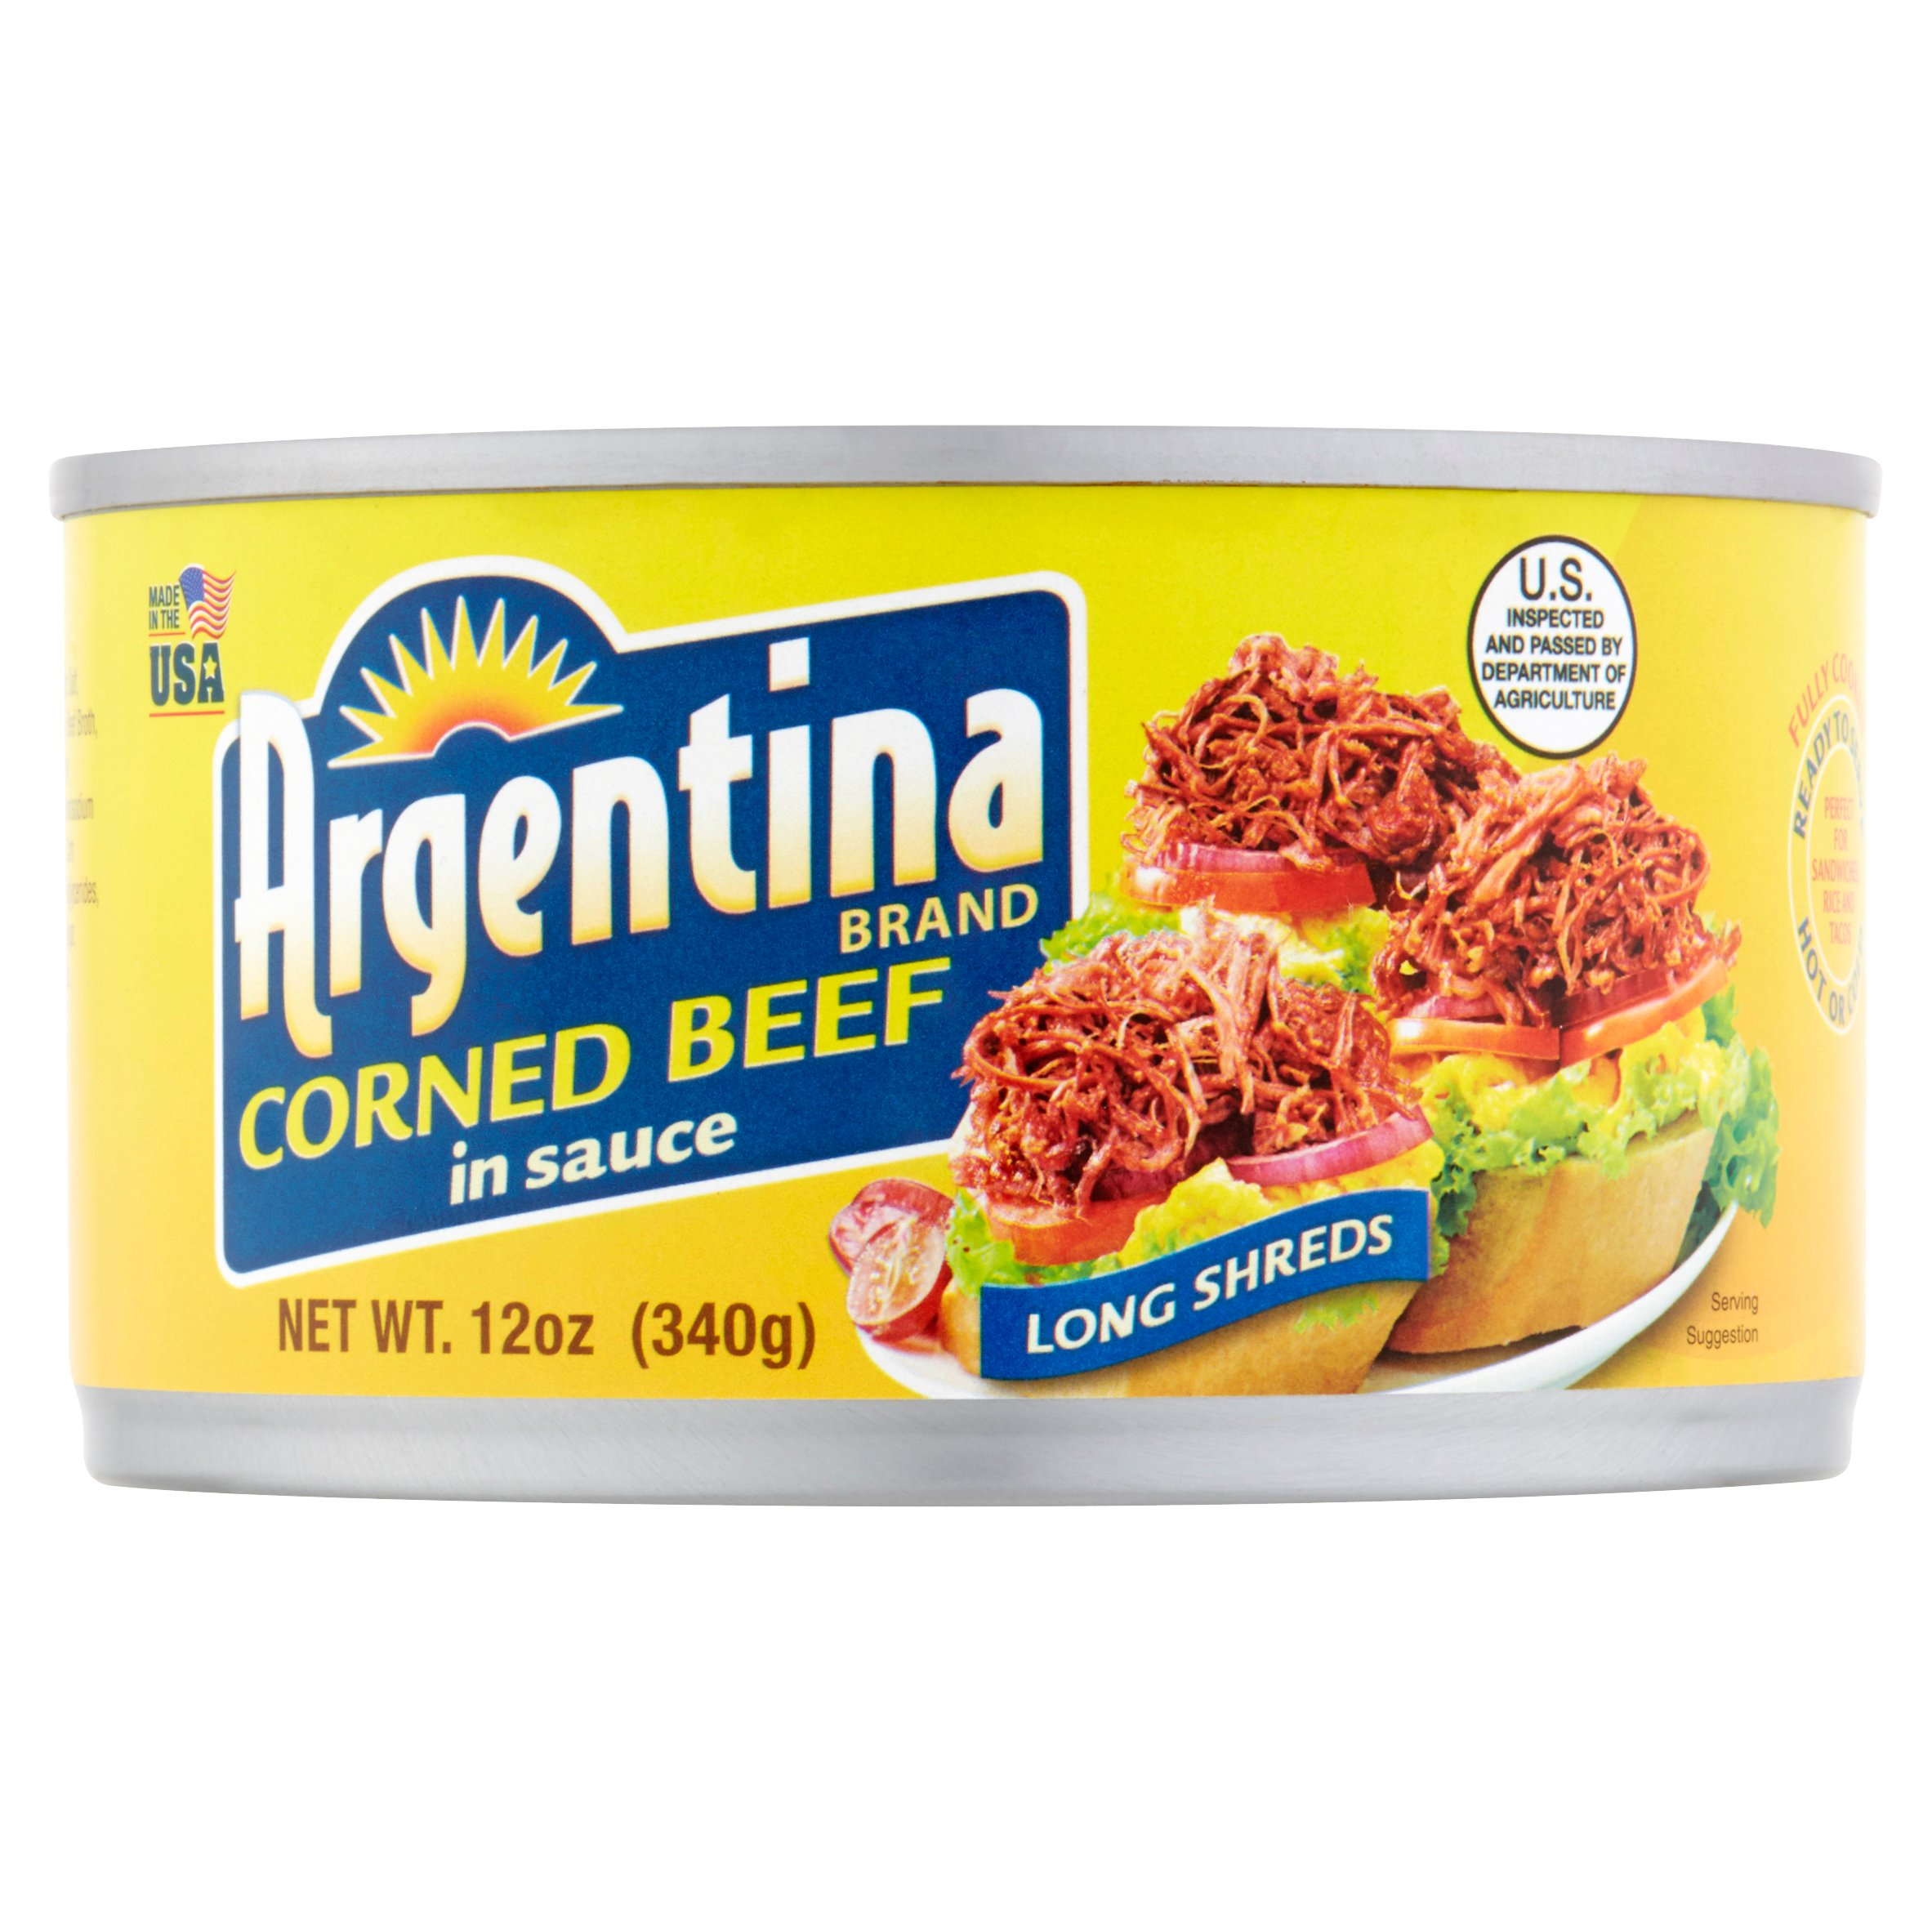 Argentina Brand Corned Beef in Sauce, 12 oz by The Pacific Meat Co., Inc.,